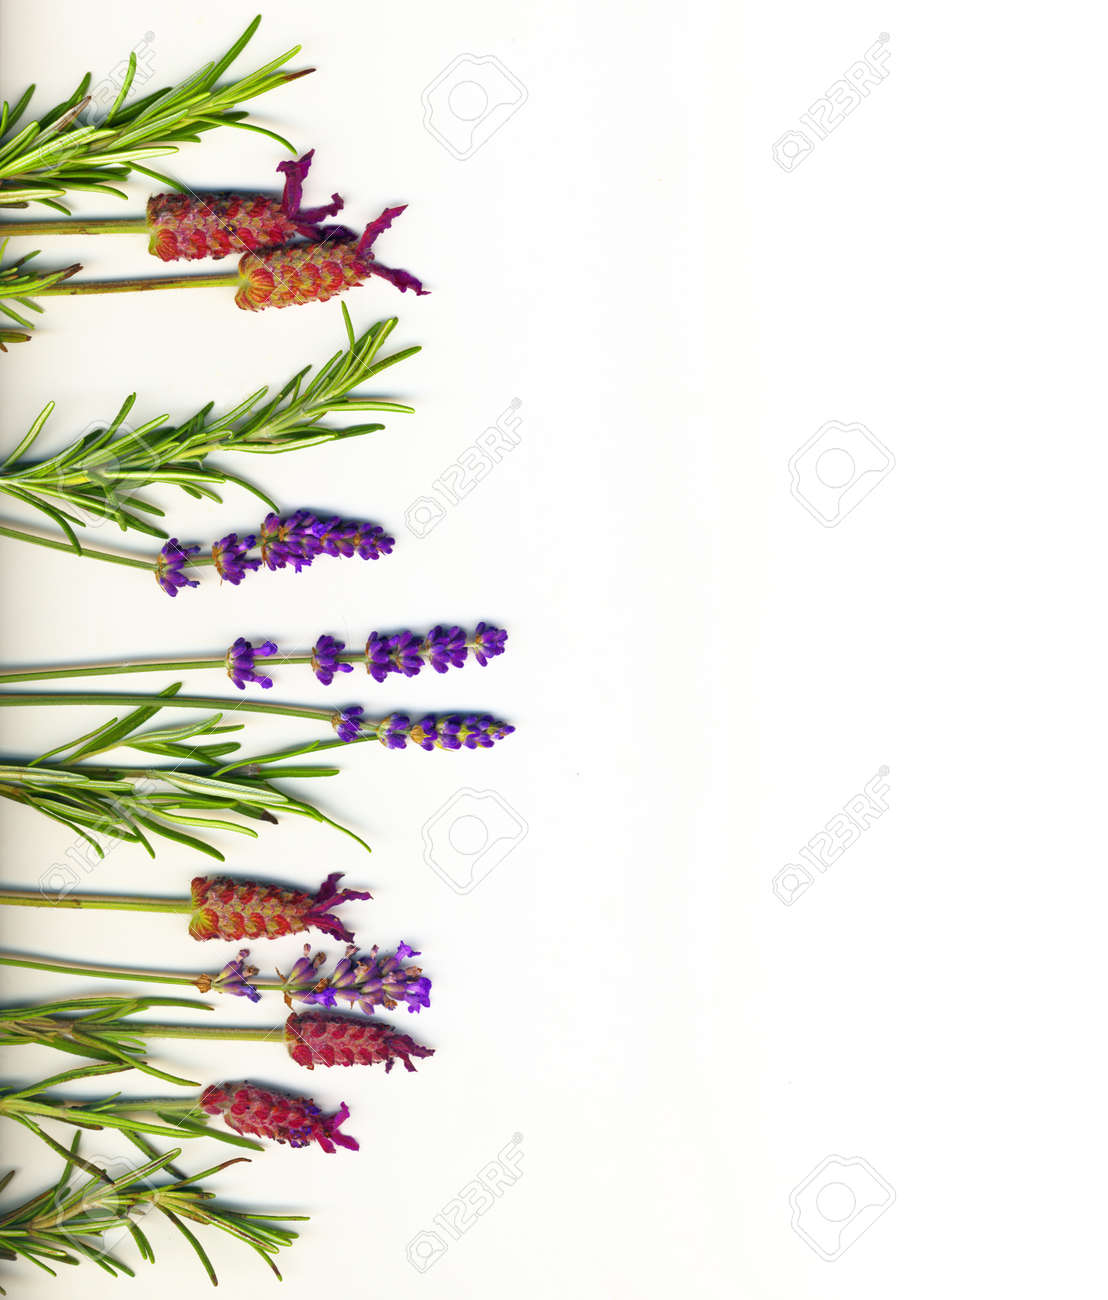 A Border Made Of Healing Herbs Lavander And Rosemary On A White